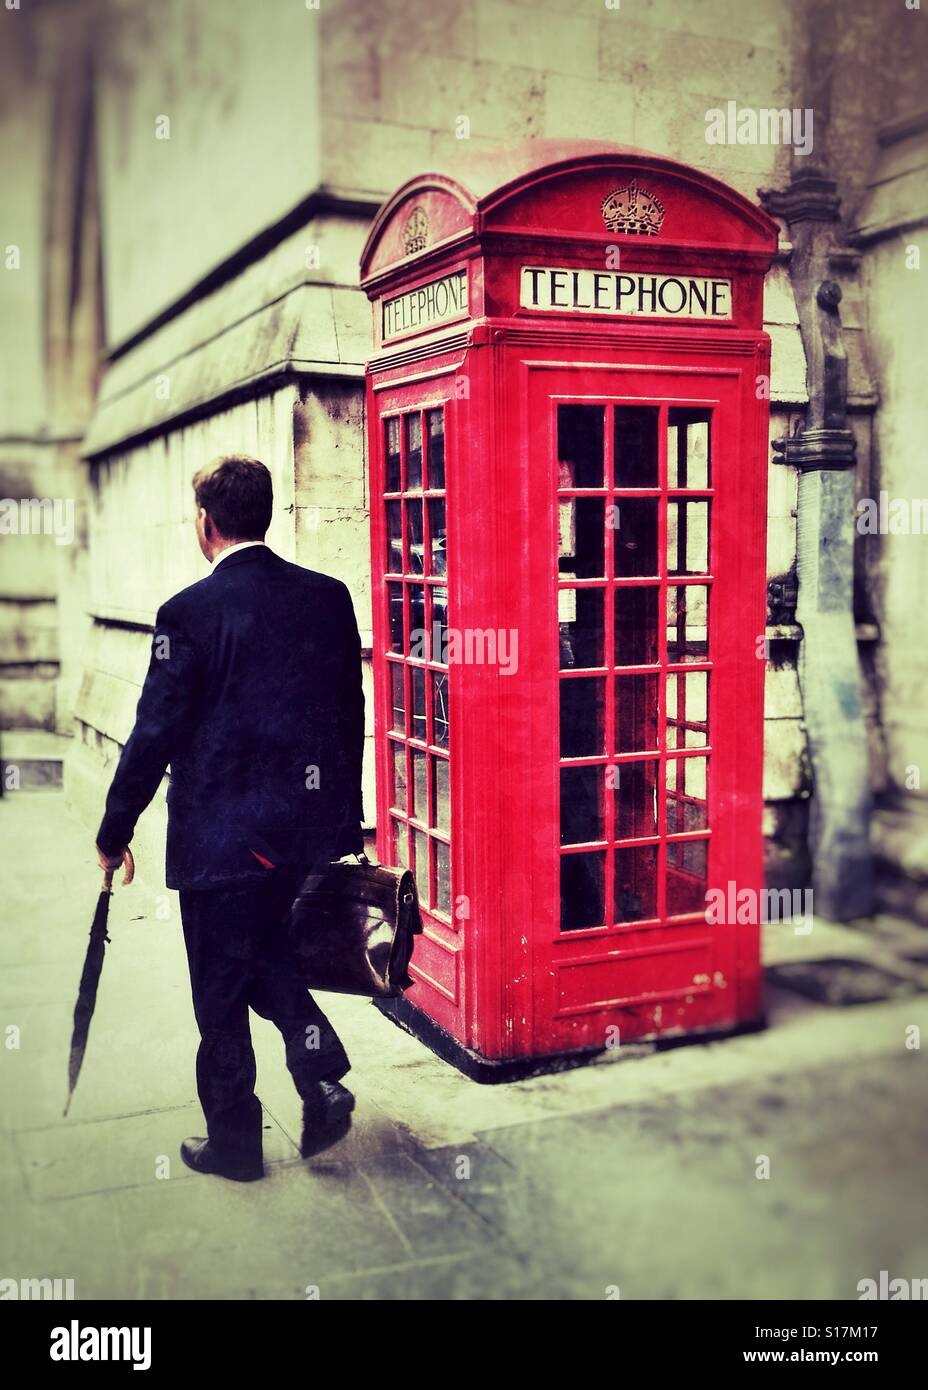 A city gent walking by an iconic red telephone box in central London. - Stock Image